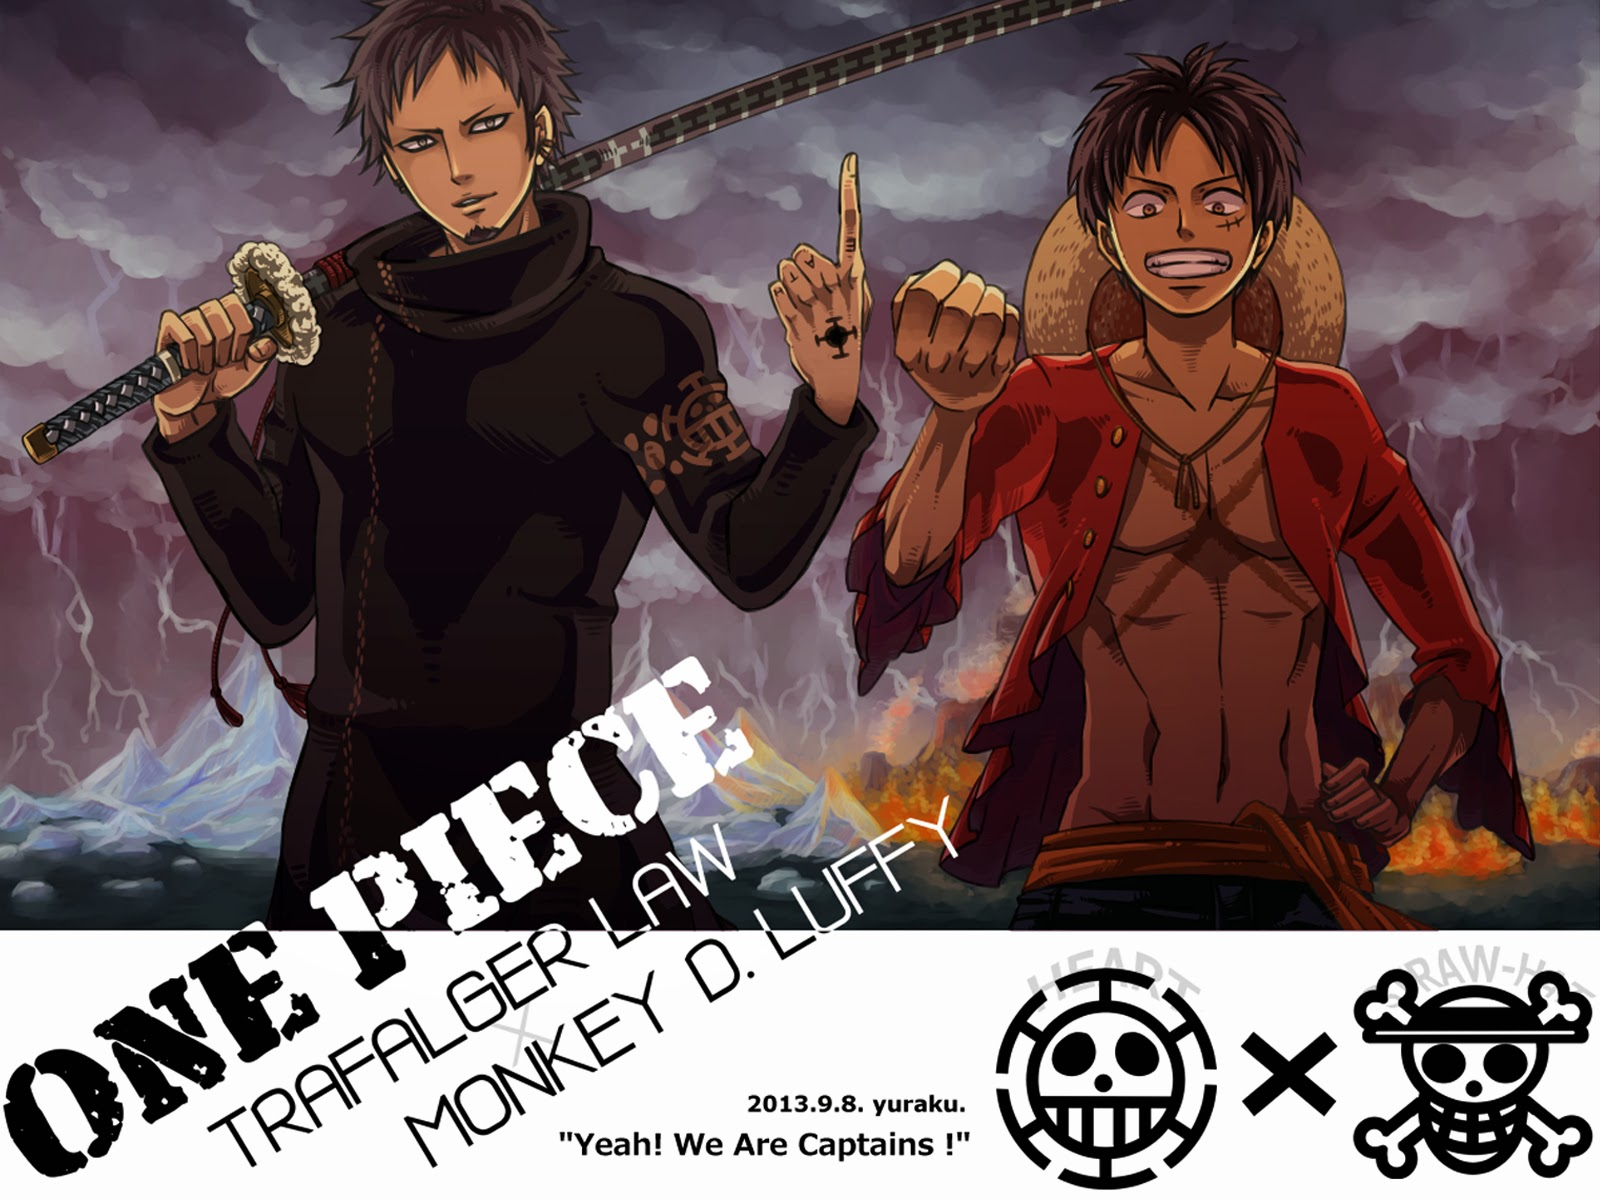 Trafalgar Law And Monkey D Luffy After Two Years One Piece Anime Hd Wallpaper 1600x1200